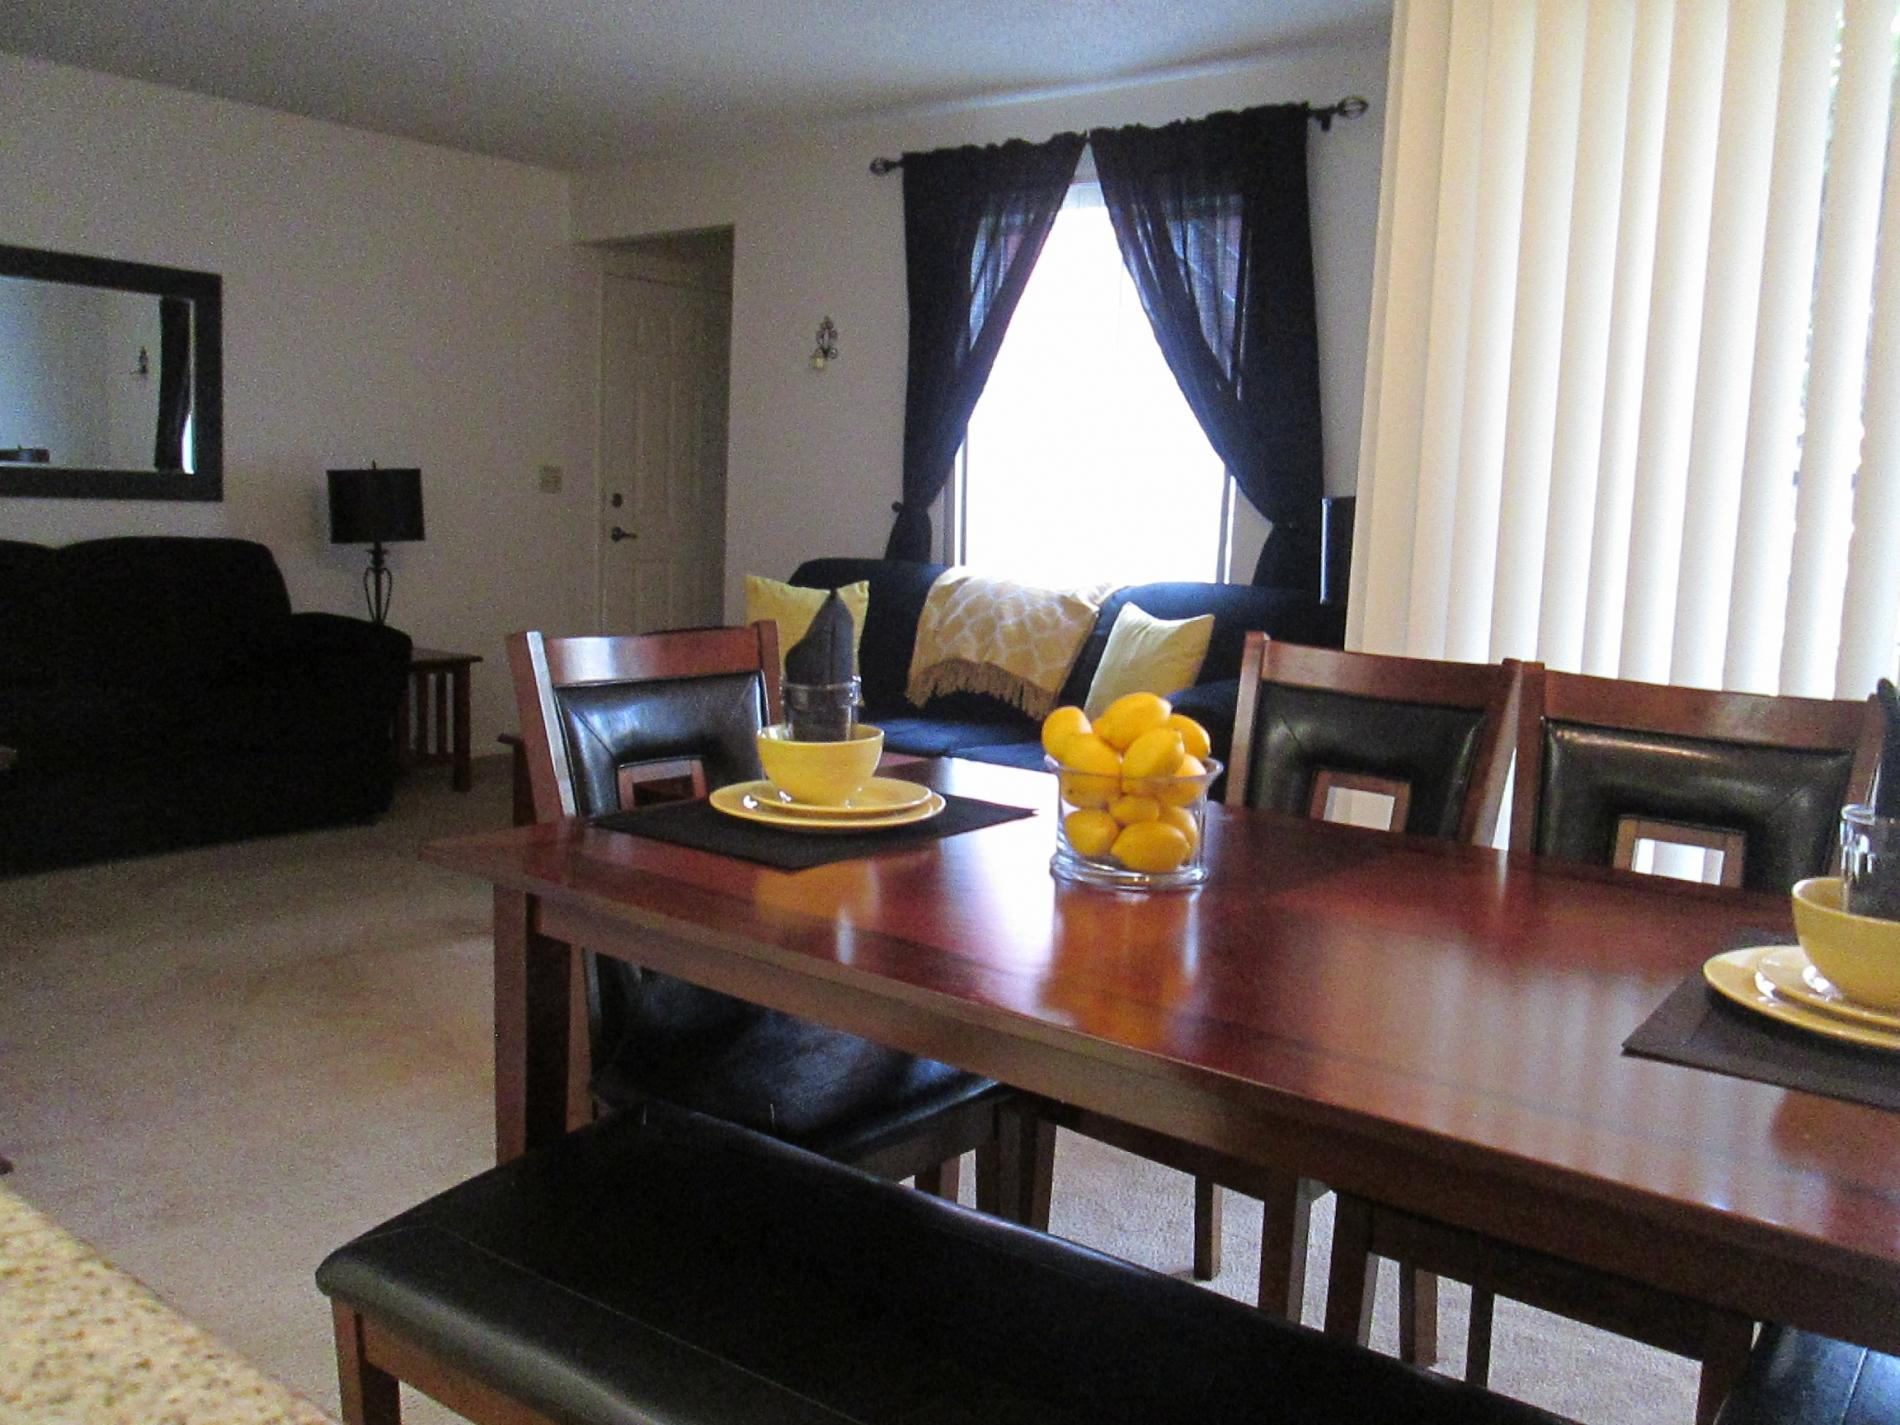 704A Family Suite at Whispering Meadows Apts. 2